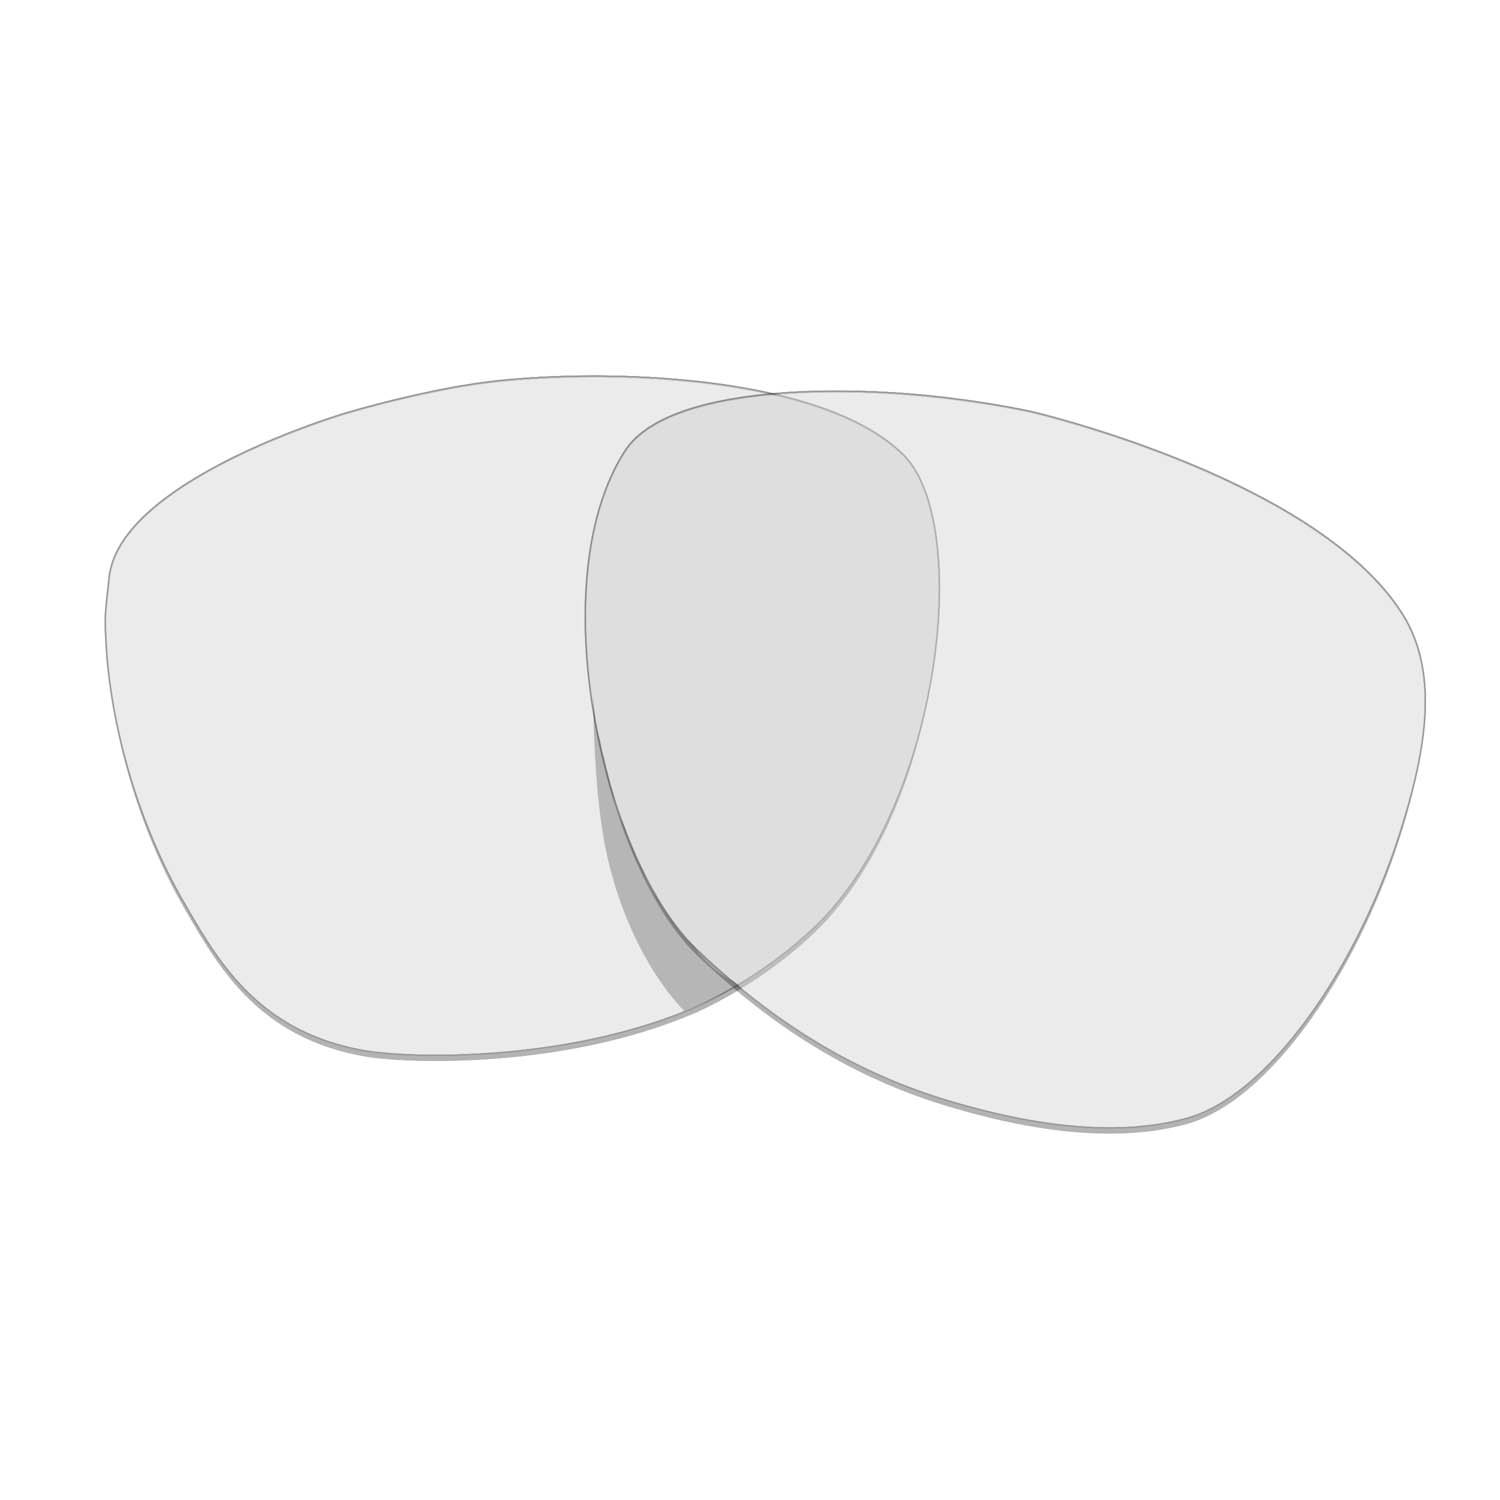 Hkuco Mens Replacement Lenses For Oakley Frogskins Sunglasses Transparent Polarized